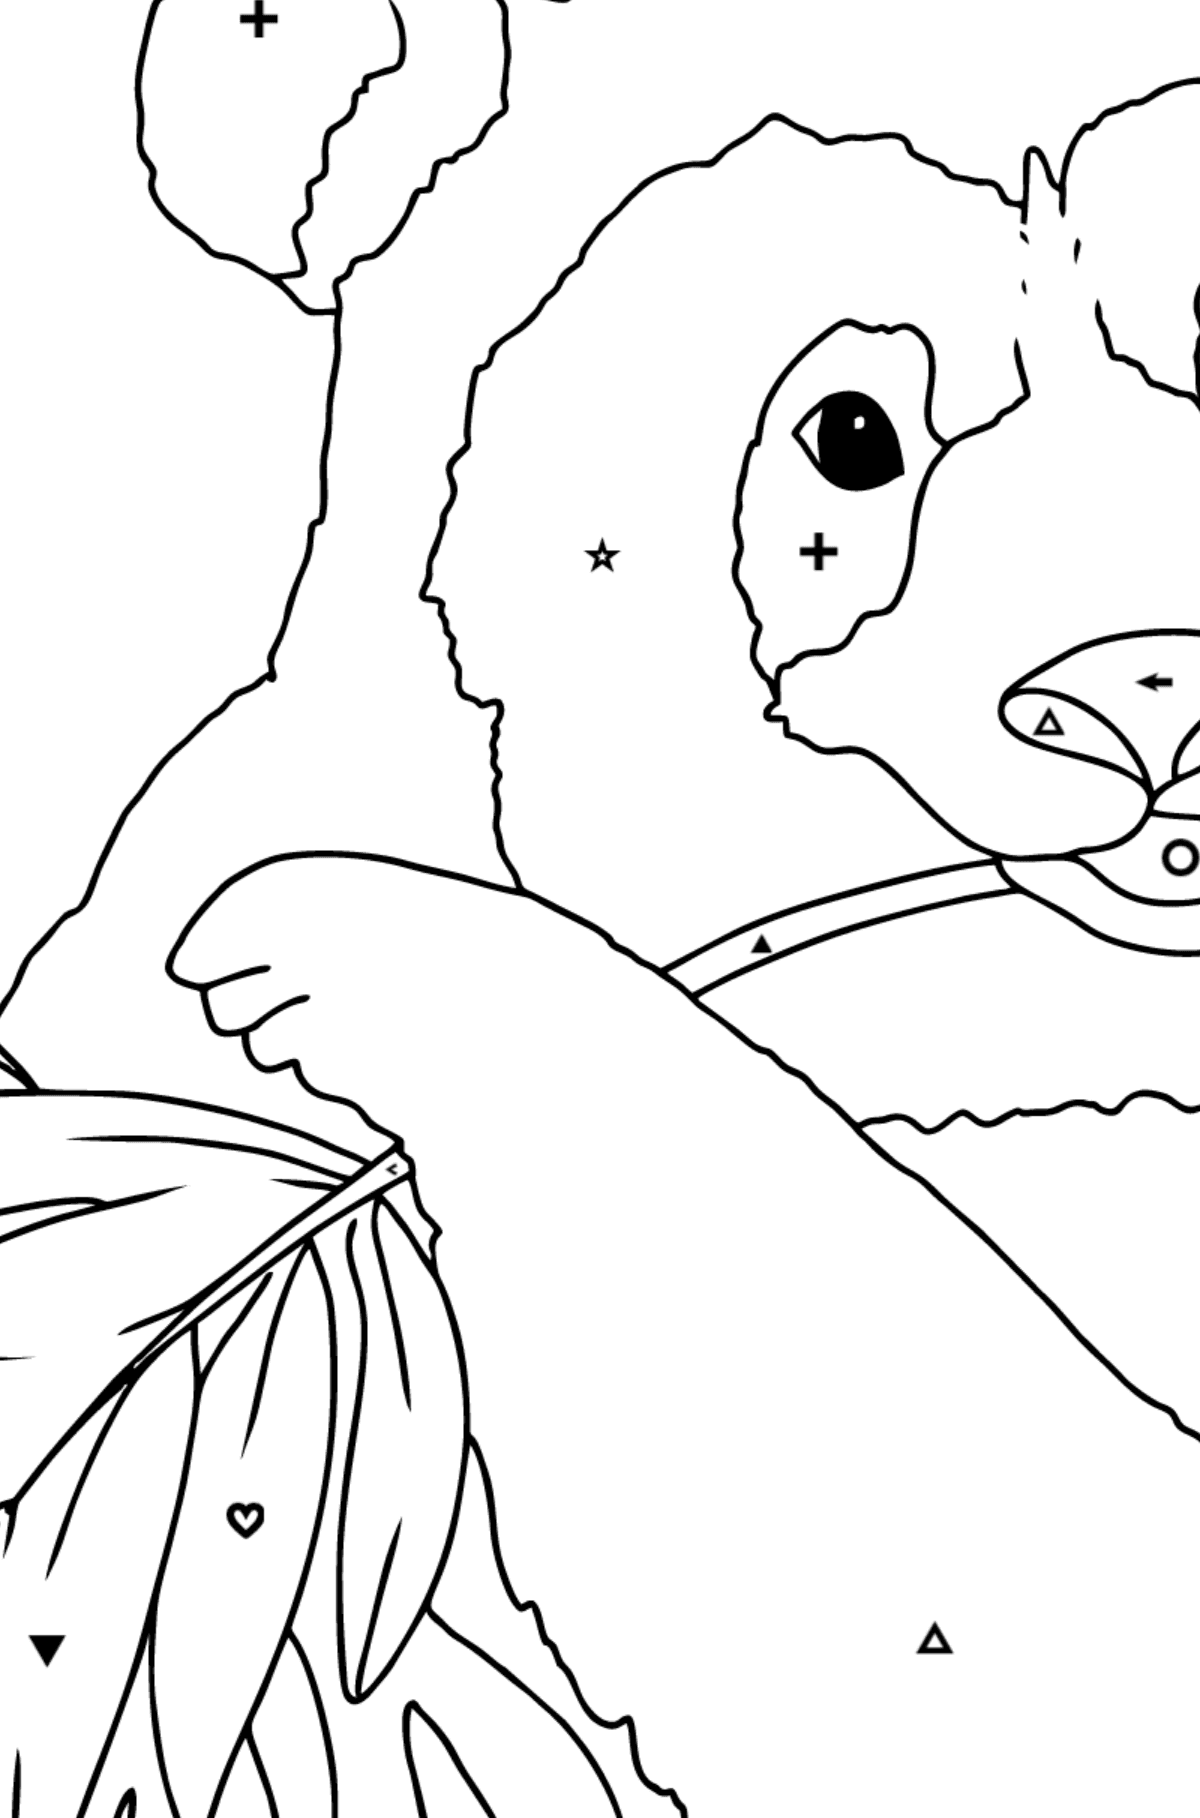 Coloring Page - A Panda is Eating Bamboo Leaves - Coloring by Symbols and Geometric Shapes for Kids